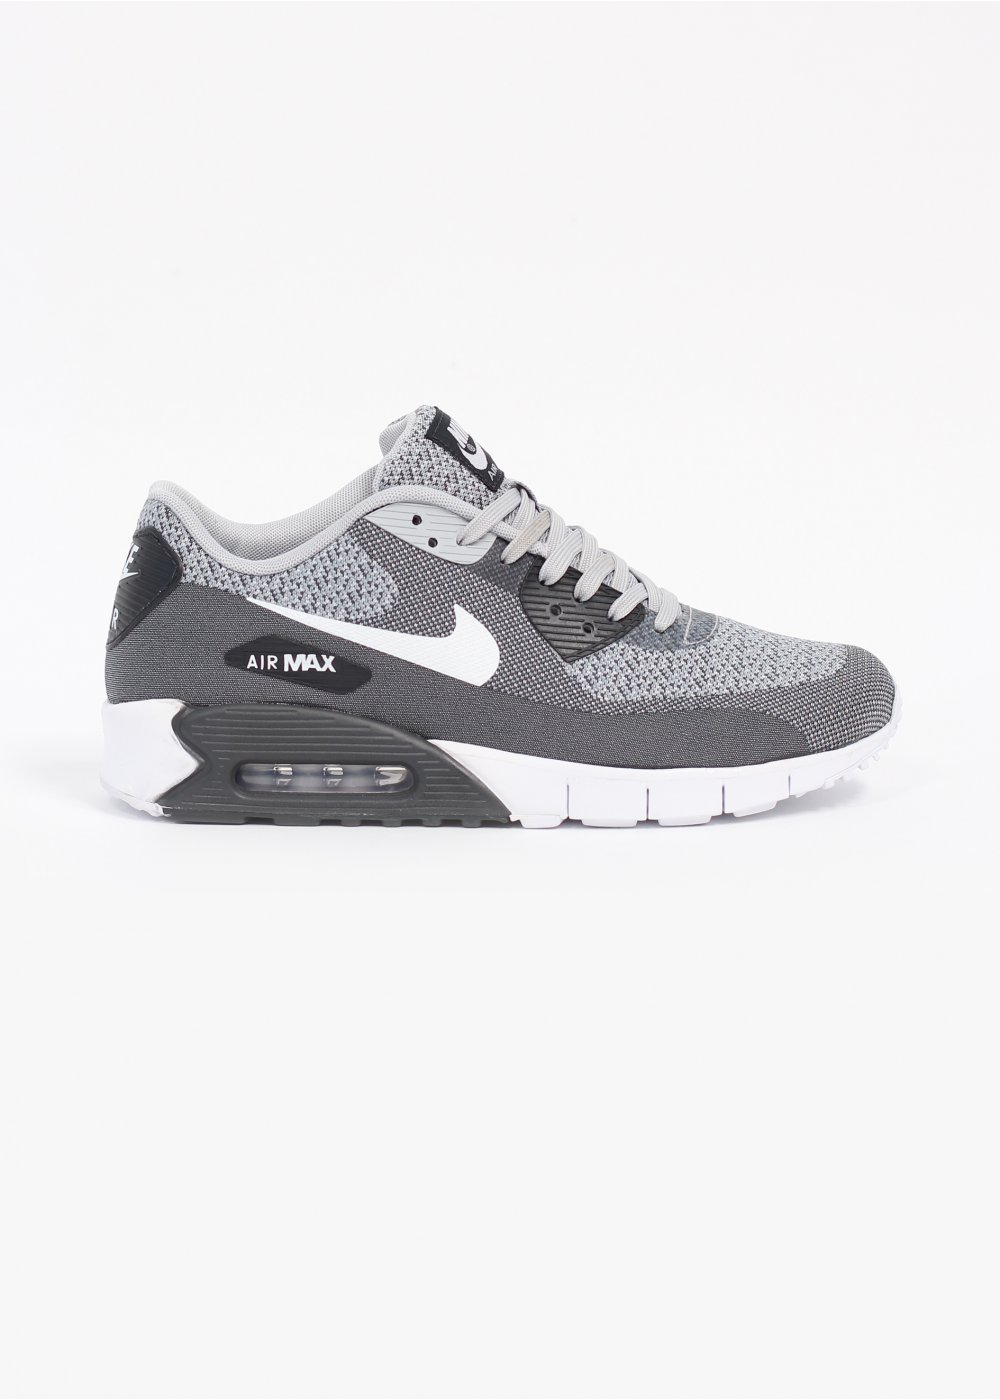 sports shoes ac13e aa969 Air Max 90 JCRD Jacquard Trainers - Wolf Grey   Pure Platinum